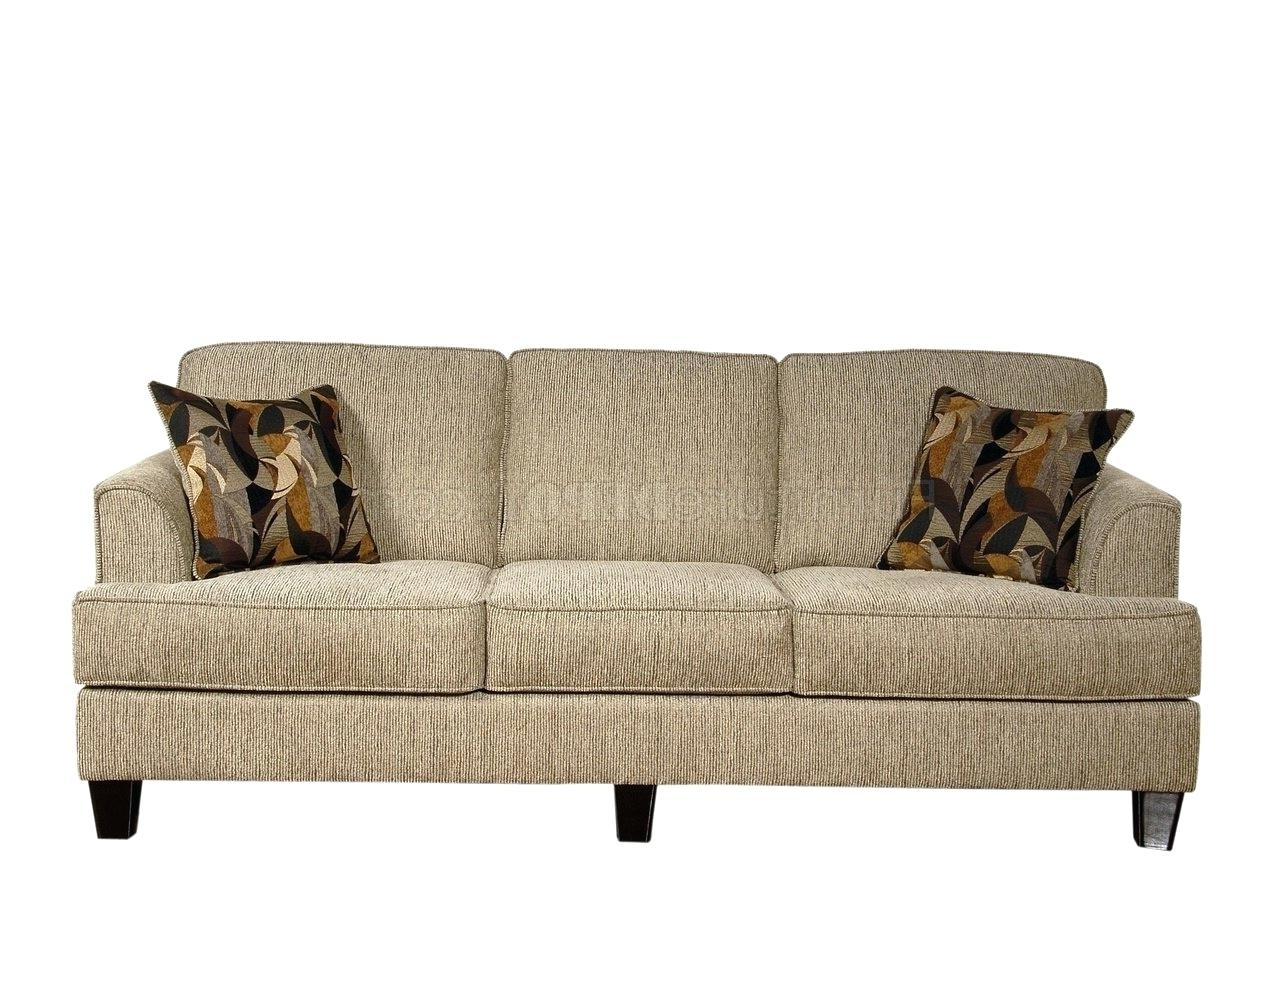 Most Up To Date Sofa : 1920sofa And Chairet Blueets In Leather Onale Casa Evora Inside Clarksville Tn Sectional Sofas (View 7 of 20)